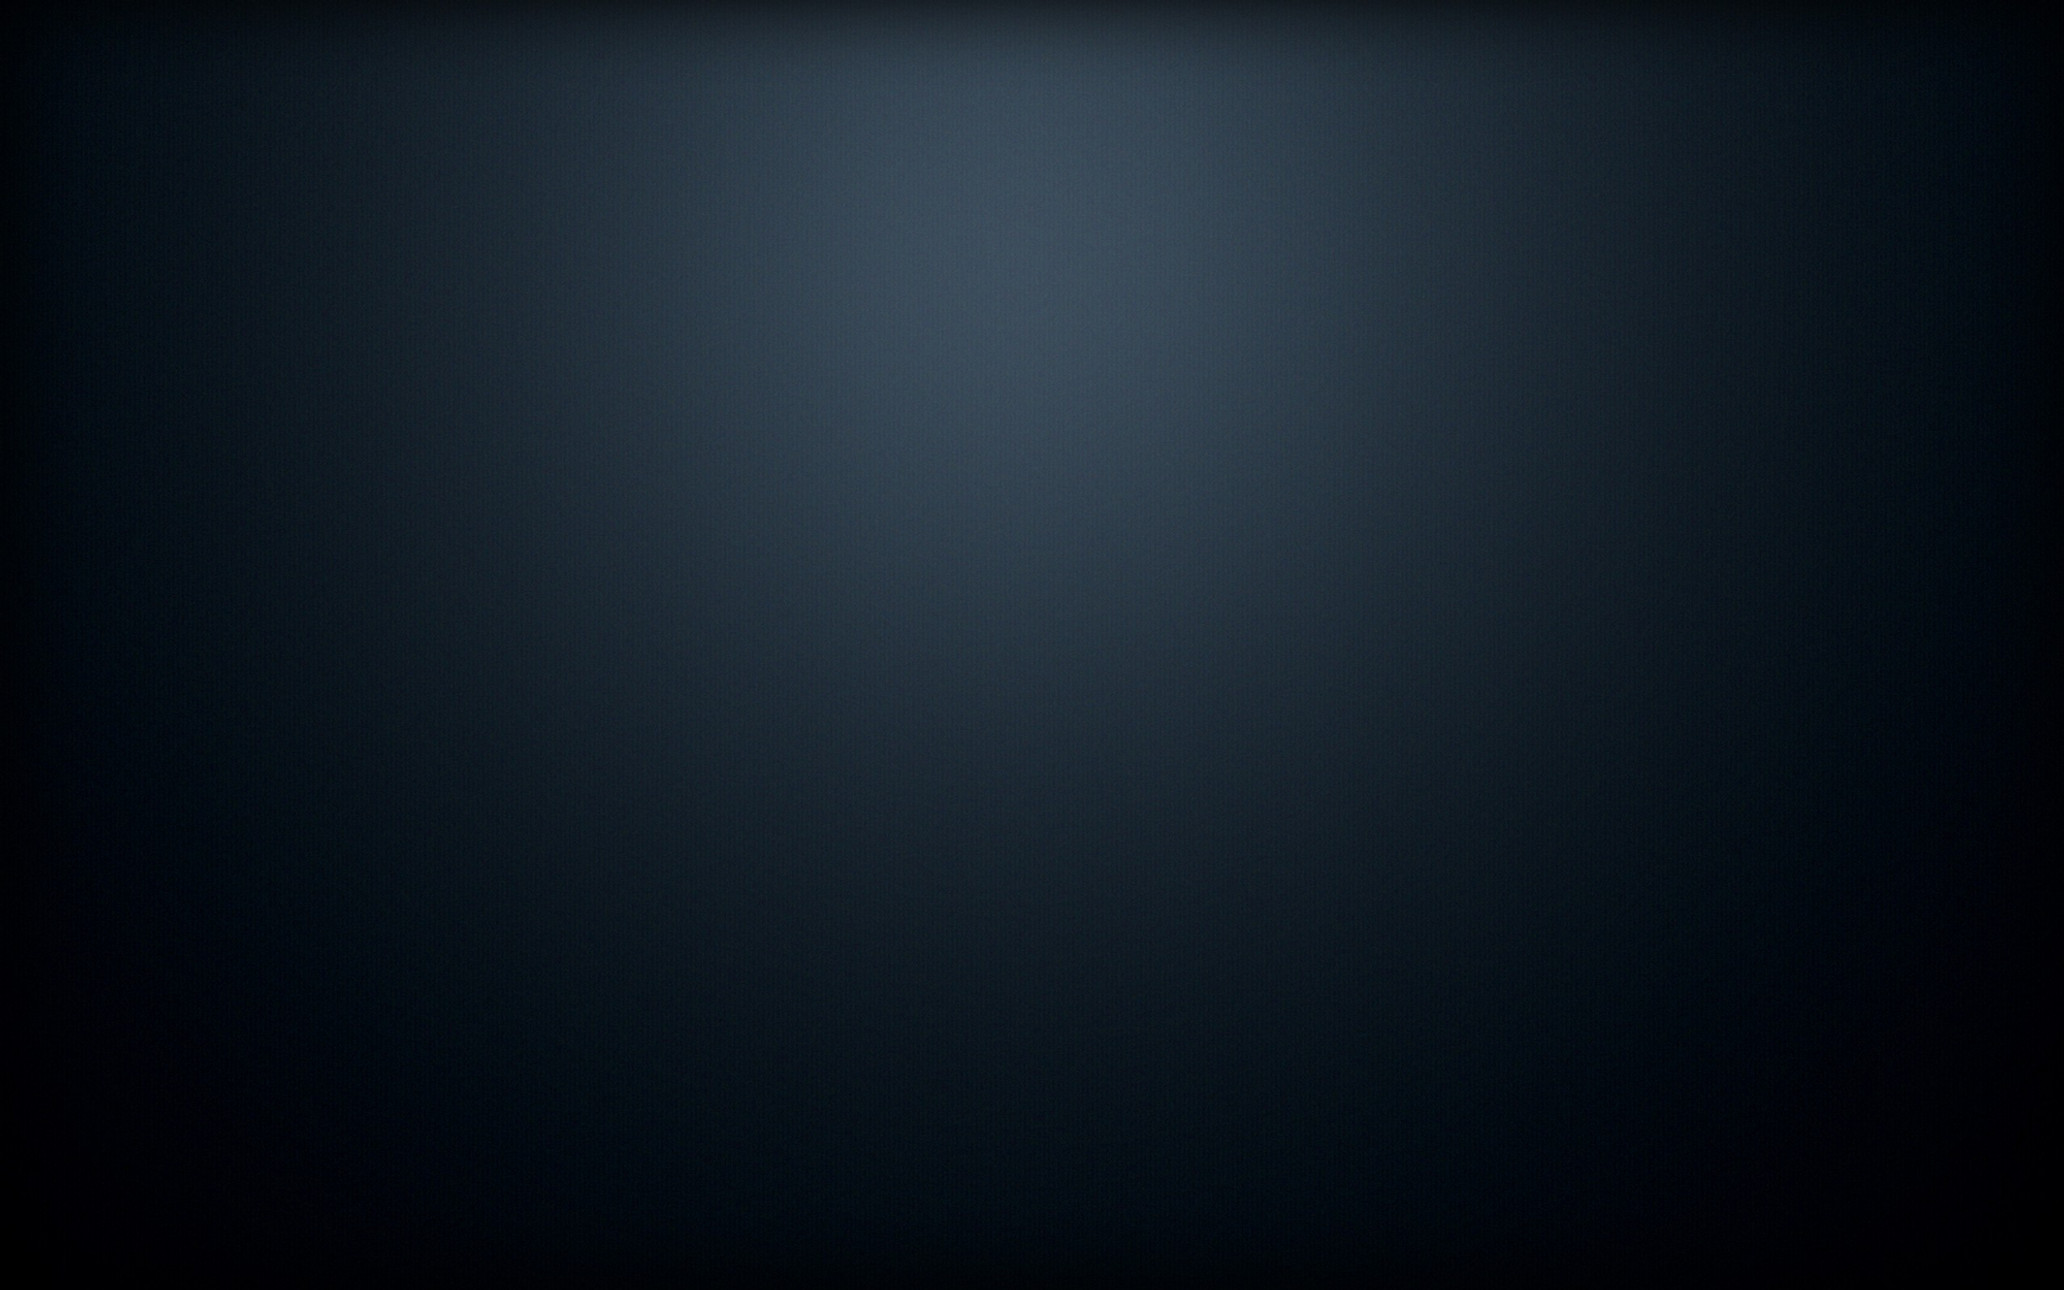 Black wallpaper gradient_02.jpg